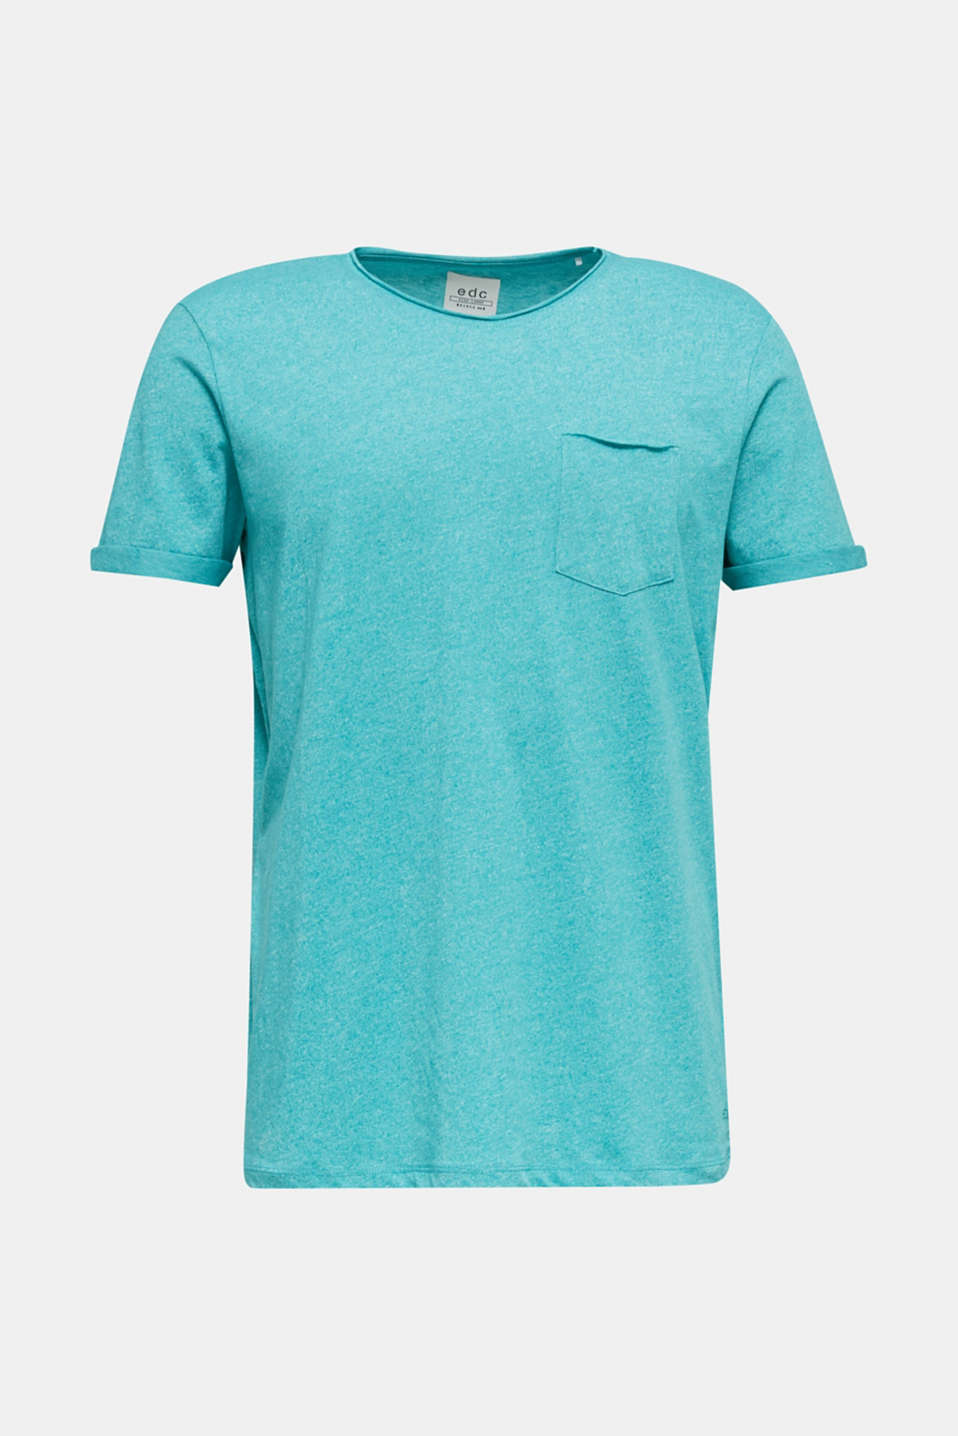 Jersey T-shirt in a casual look, LIGHT AQUA GREEN 5, detail image number 5